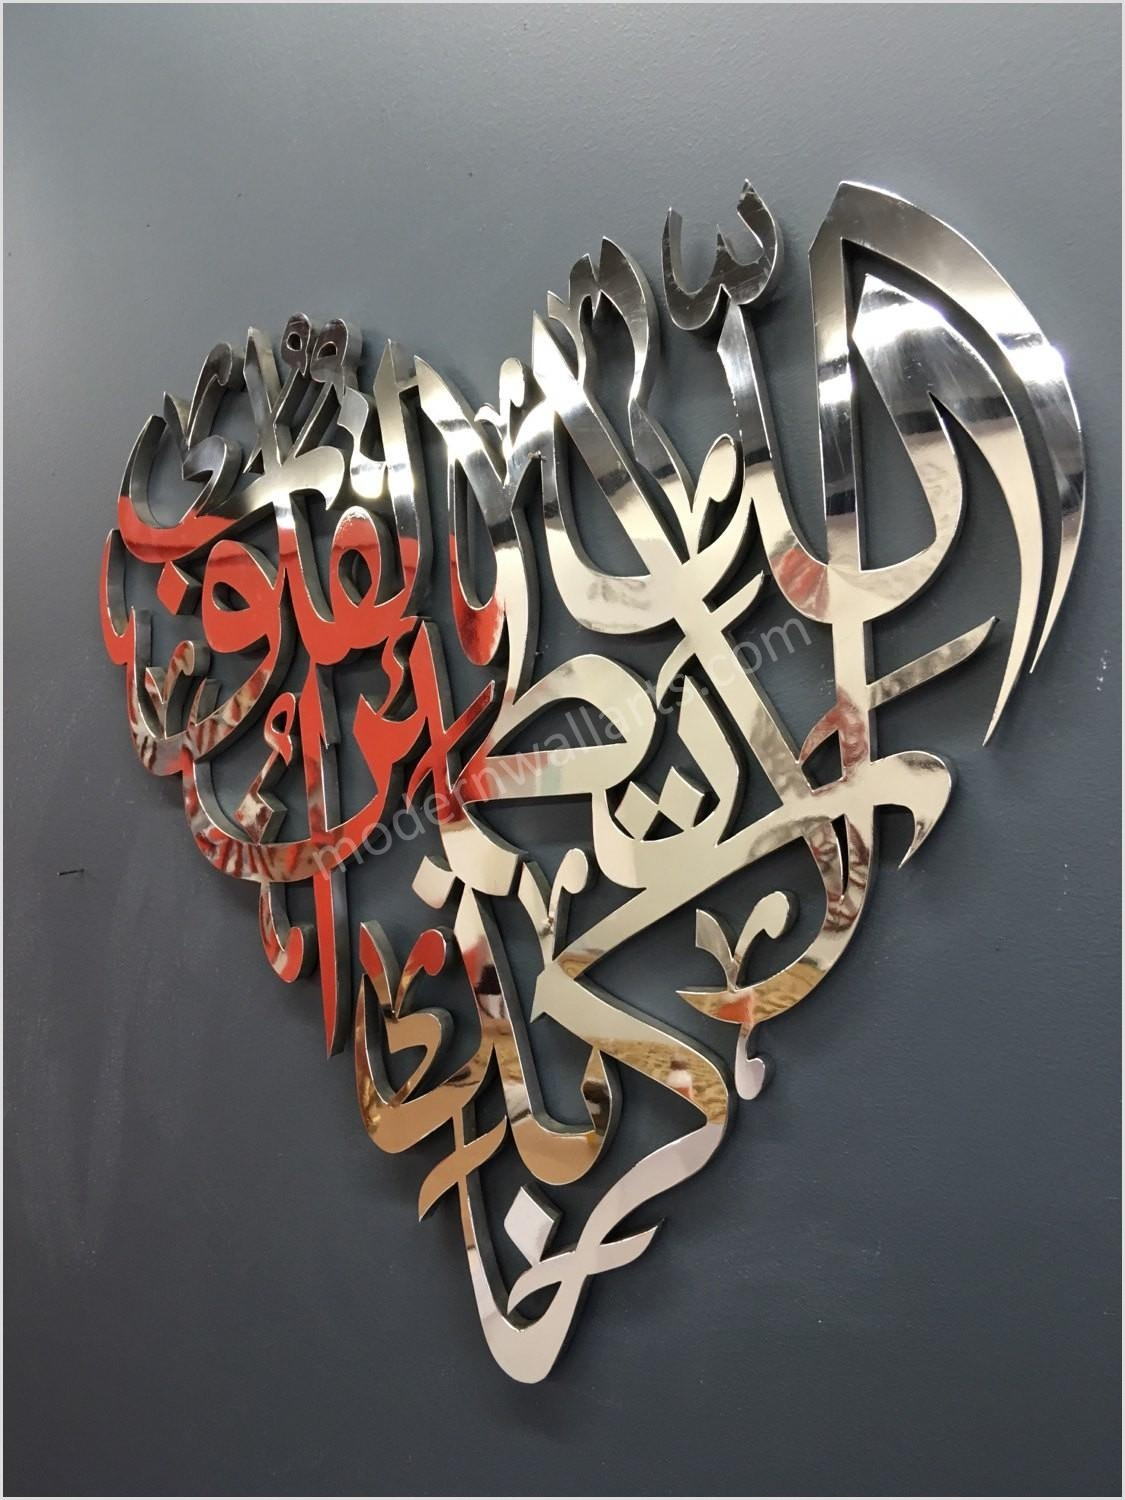 Heart Shaped Metal Wall Art Photos That Really Gorgeous – Desainnow Within Heart Shaped Metal Wall Art (View 8 of 20)